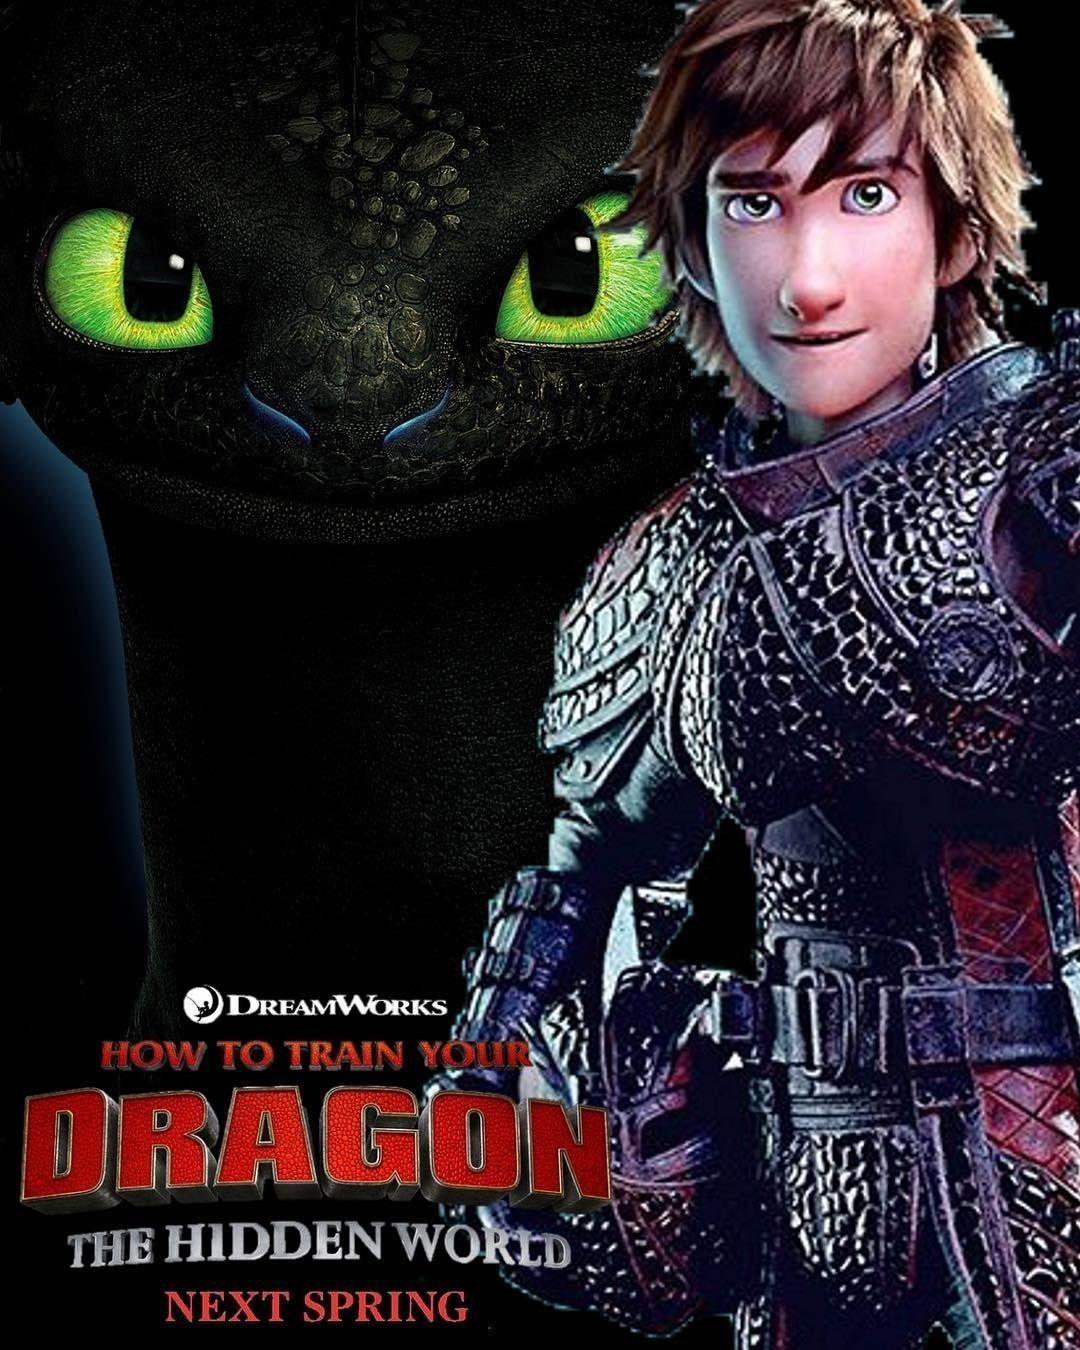 I M So Excited I Could Scream Yeah I Already Did How Train Your Dragon How To Train Your Dragon How To Train Your